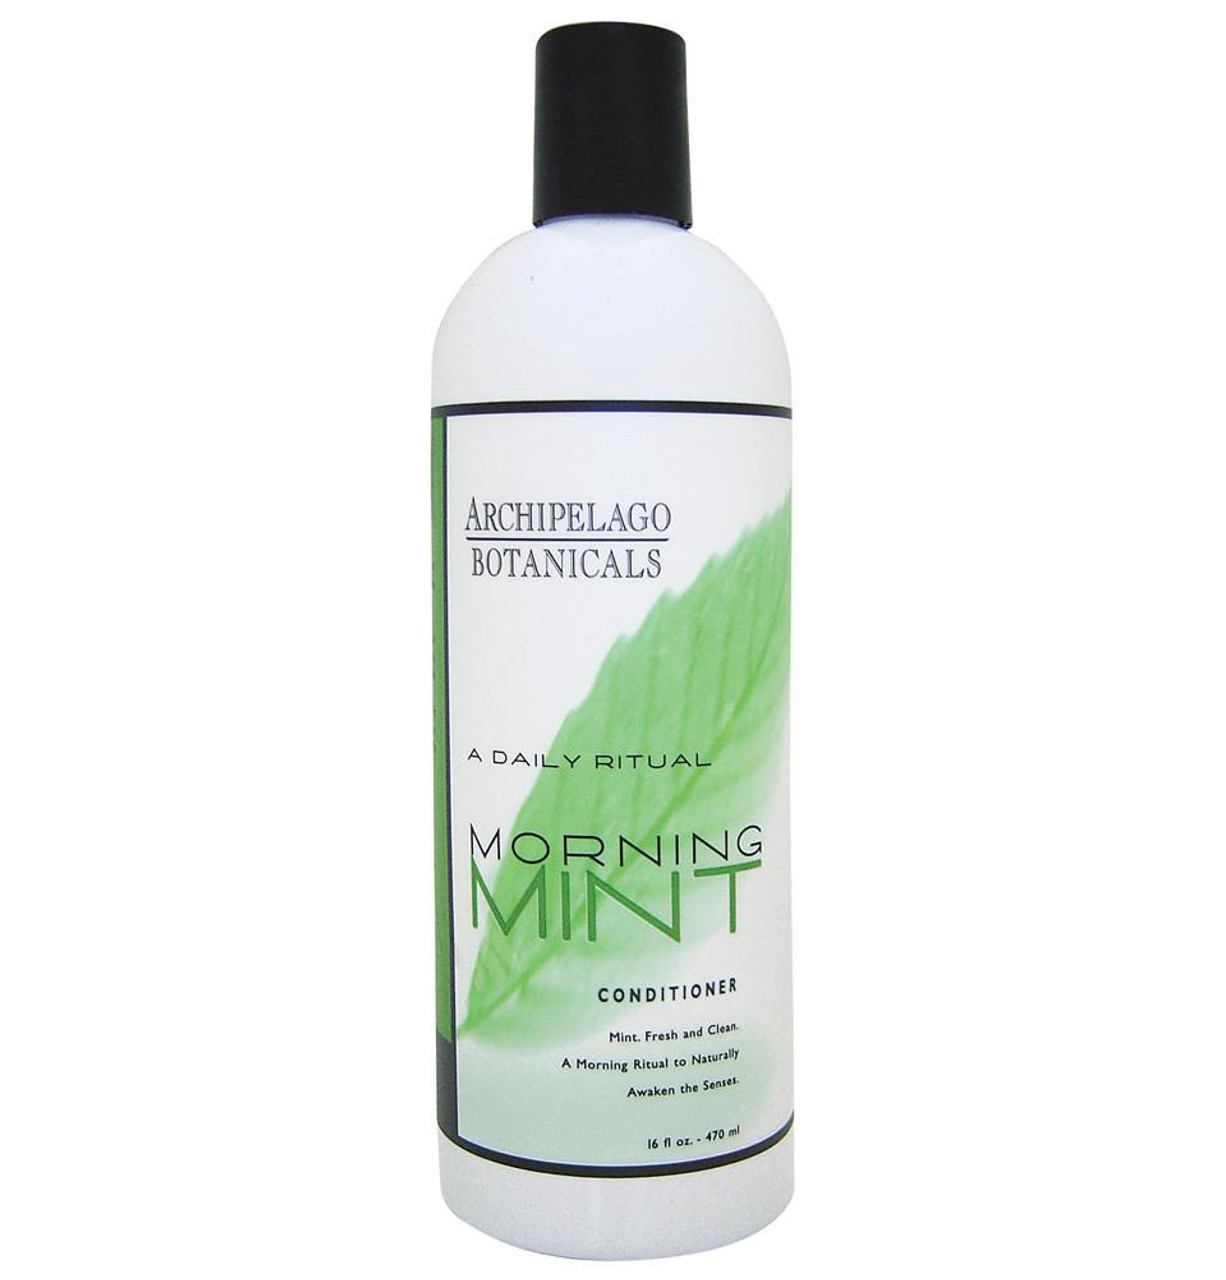 Archipelago Morning Mint Conditioner 16 oz